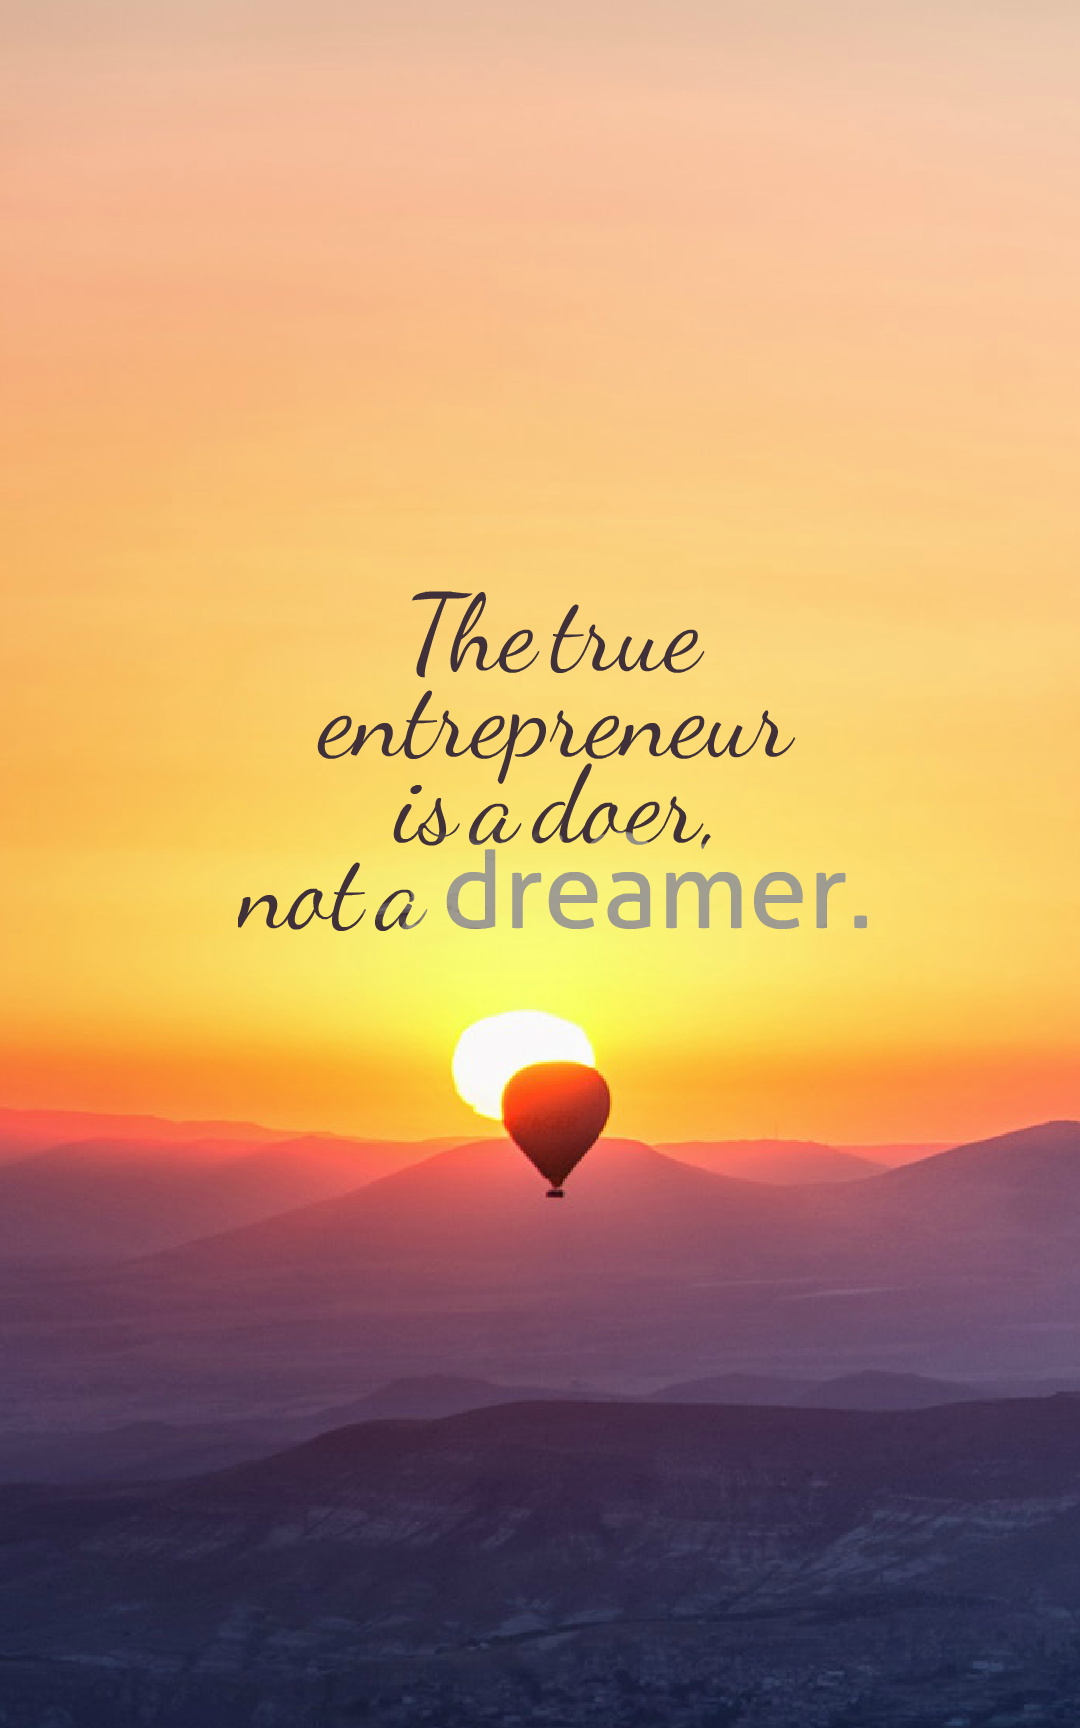 Quotes image of The true entrepreneur is a doer, not a dreamer.